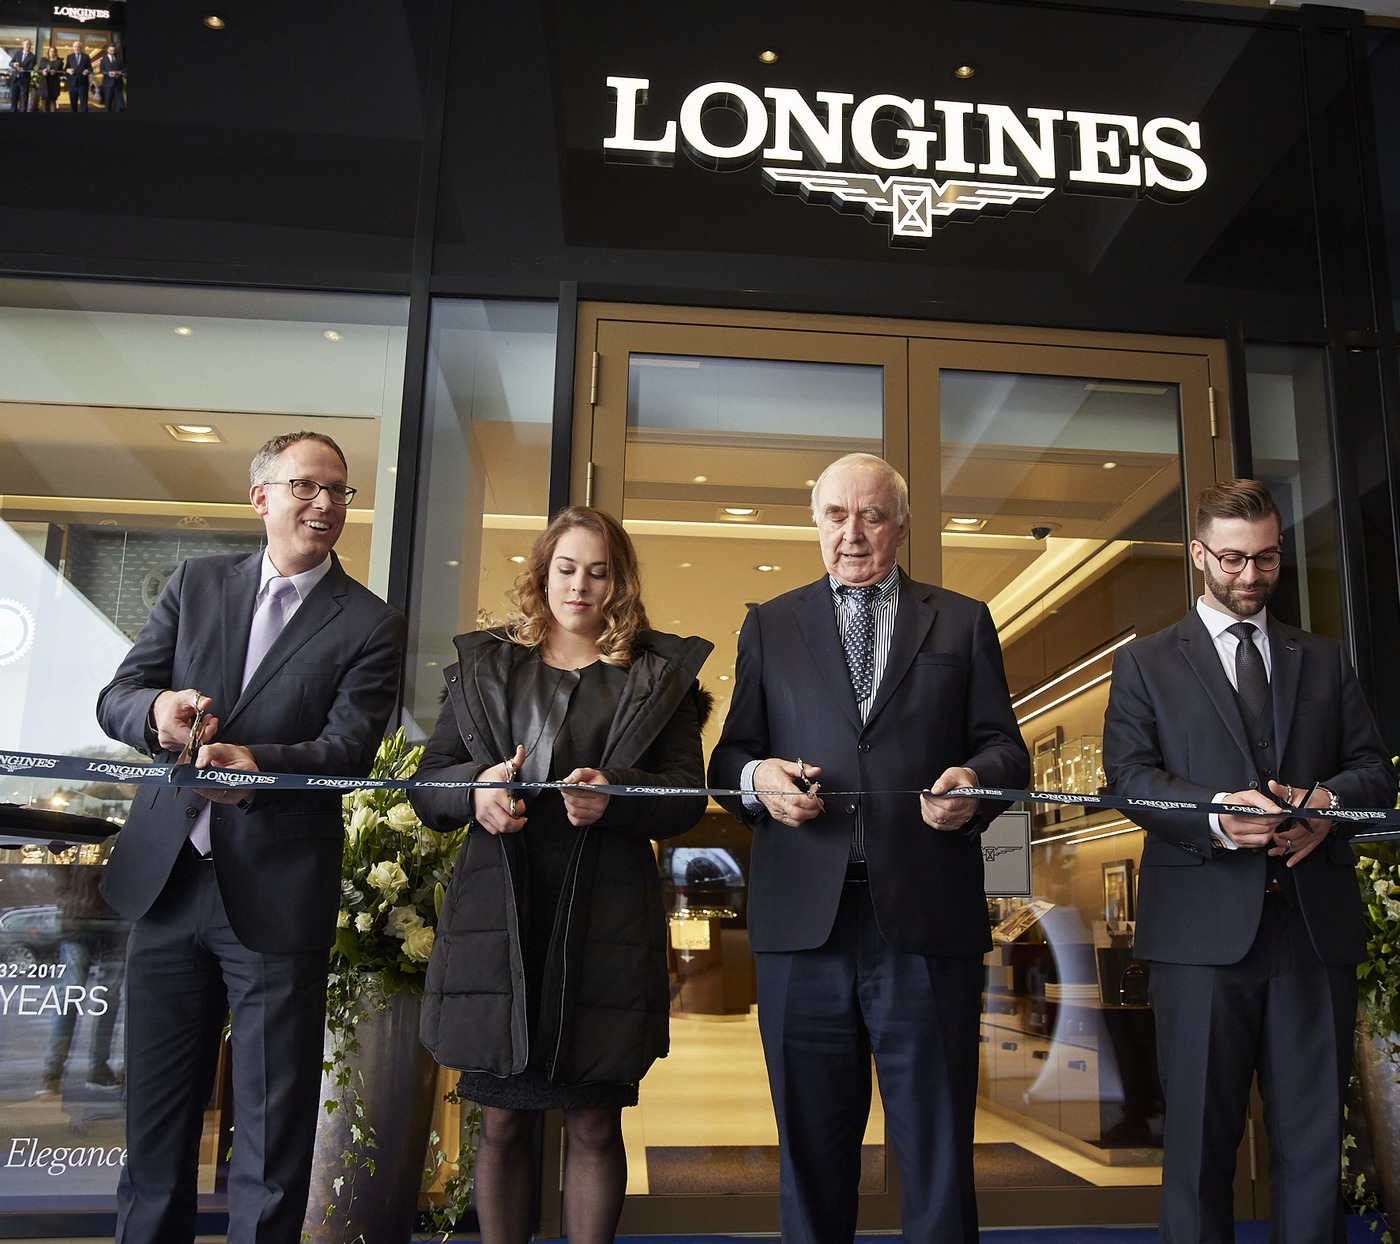 Longines Corporate Event: Longines officially inaugurates its first Corporate Boutique in Switzerland in presence of Giulia Steingruber, Ambassador of Elegance 4